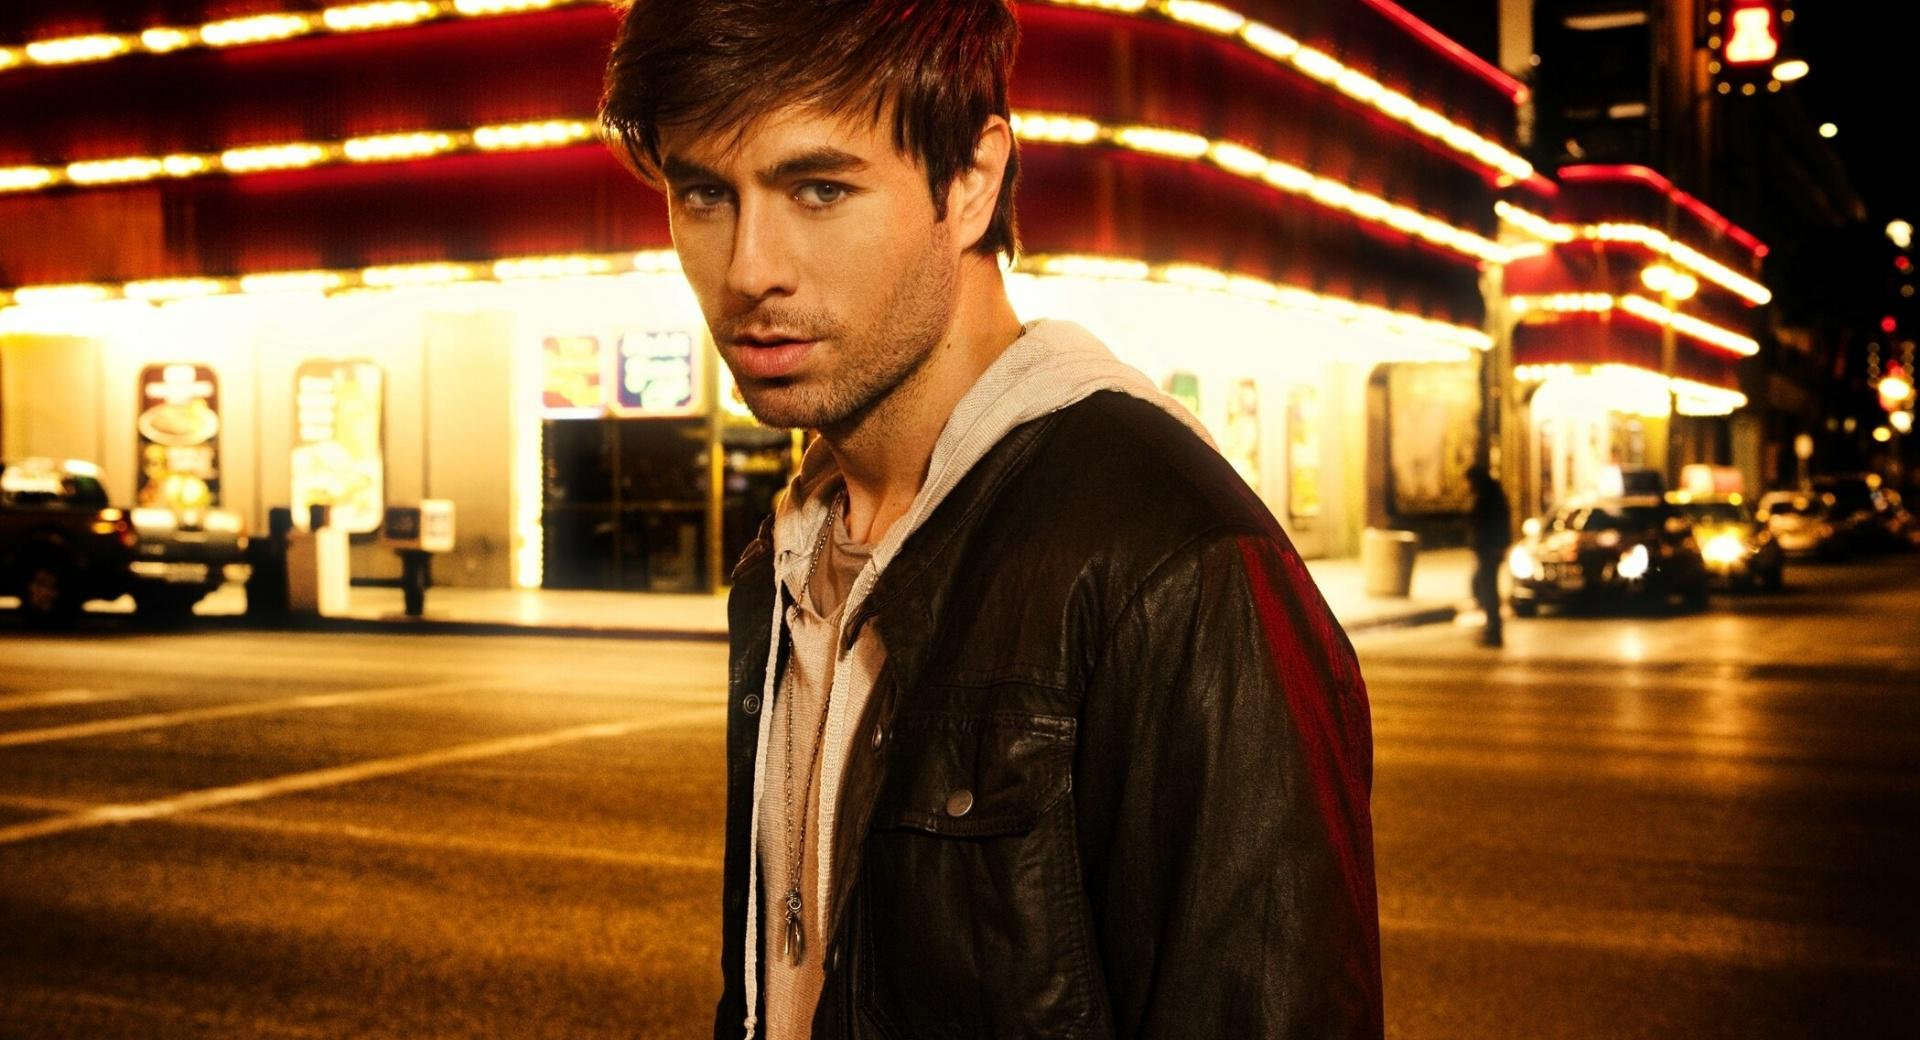 Enrique Iglesias 2012 wallpapers HD quality